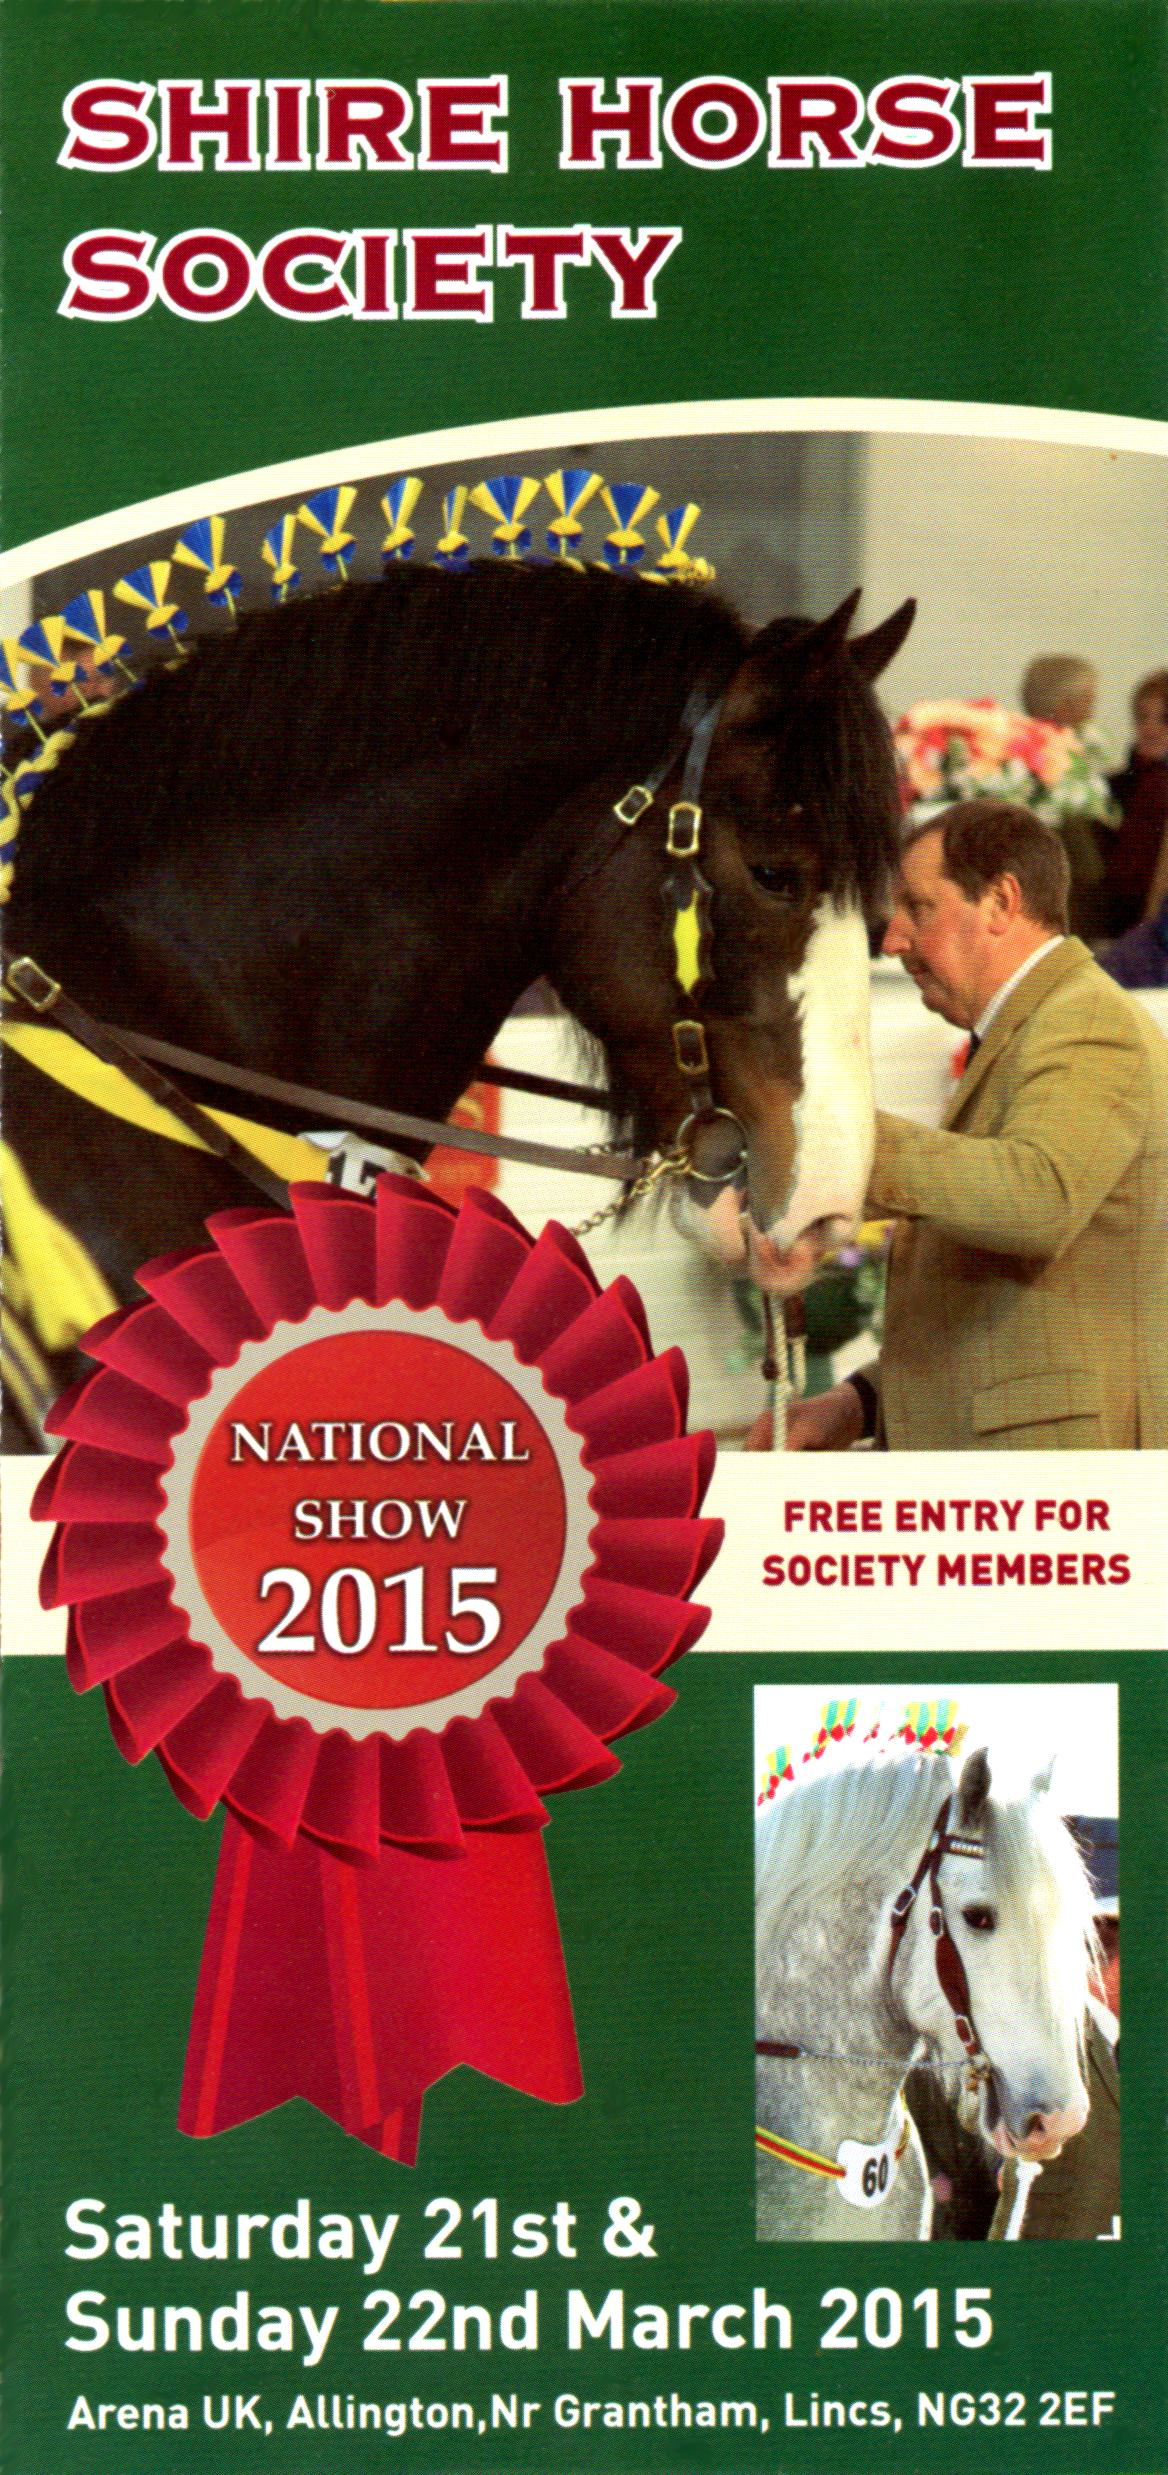 The Shire horse show 2015 takes place on a new show site: arena UK, showground Allington, near the town of Grantham.